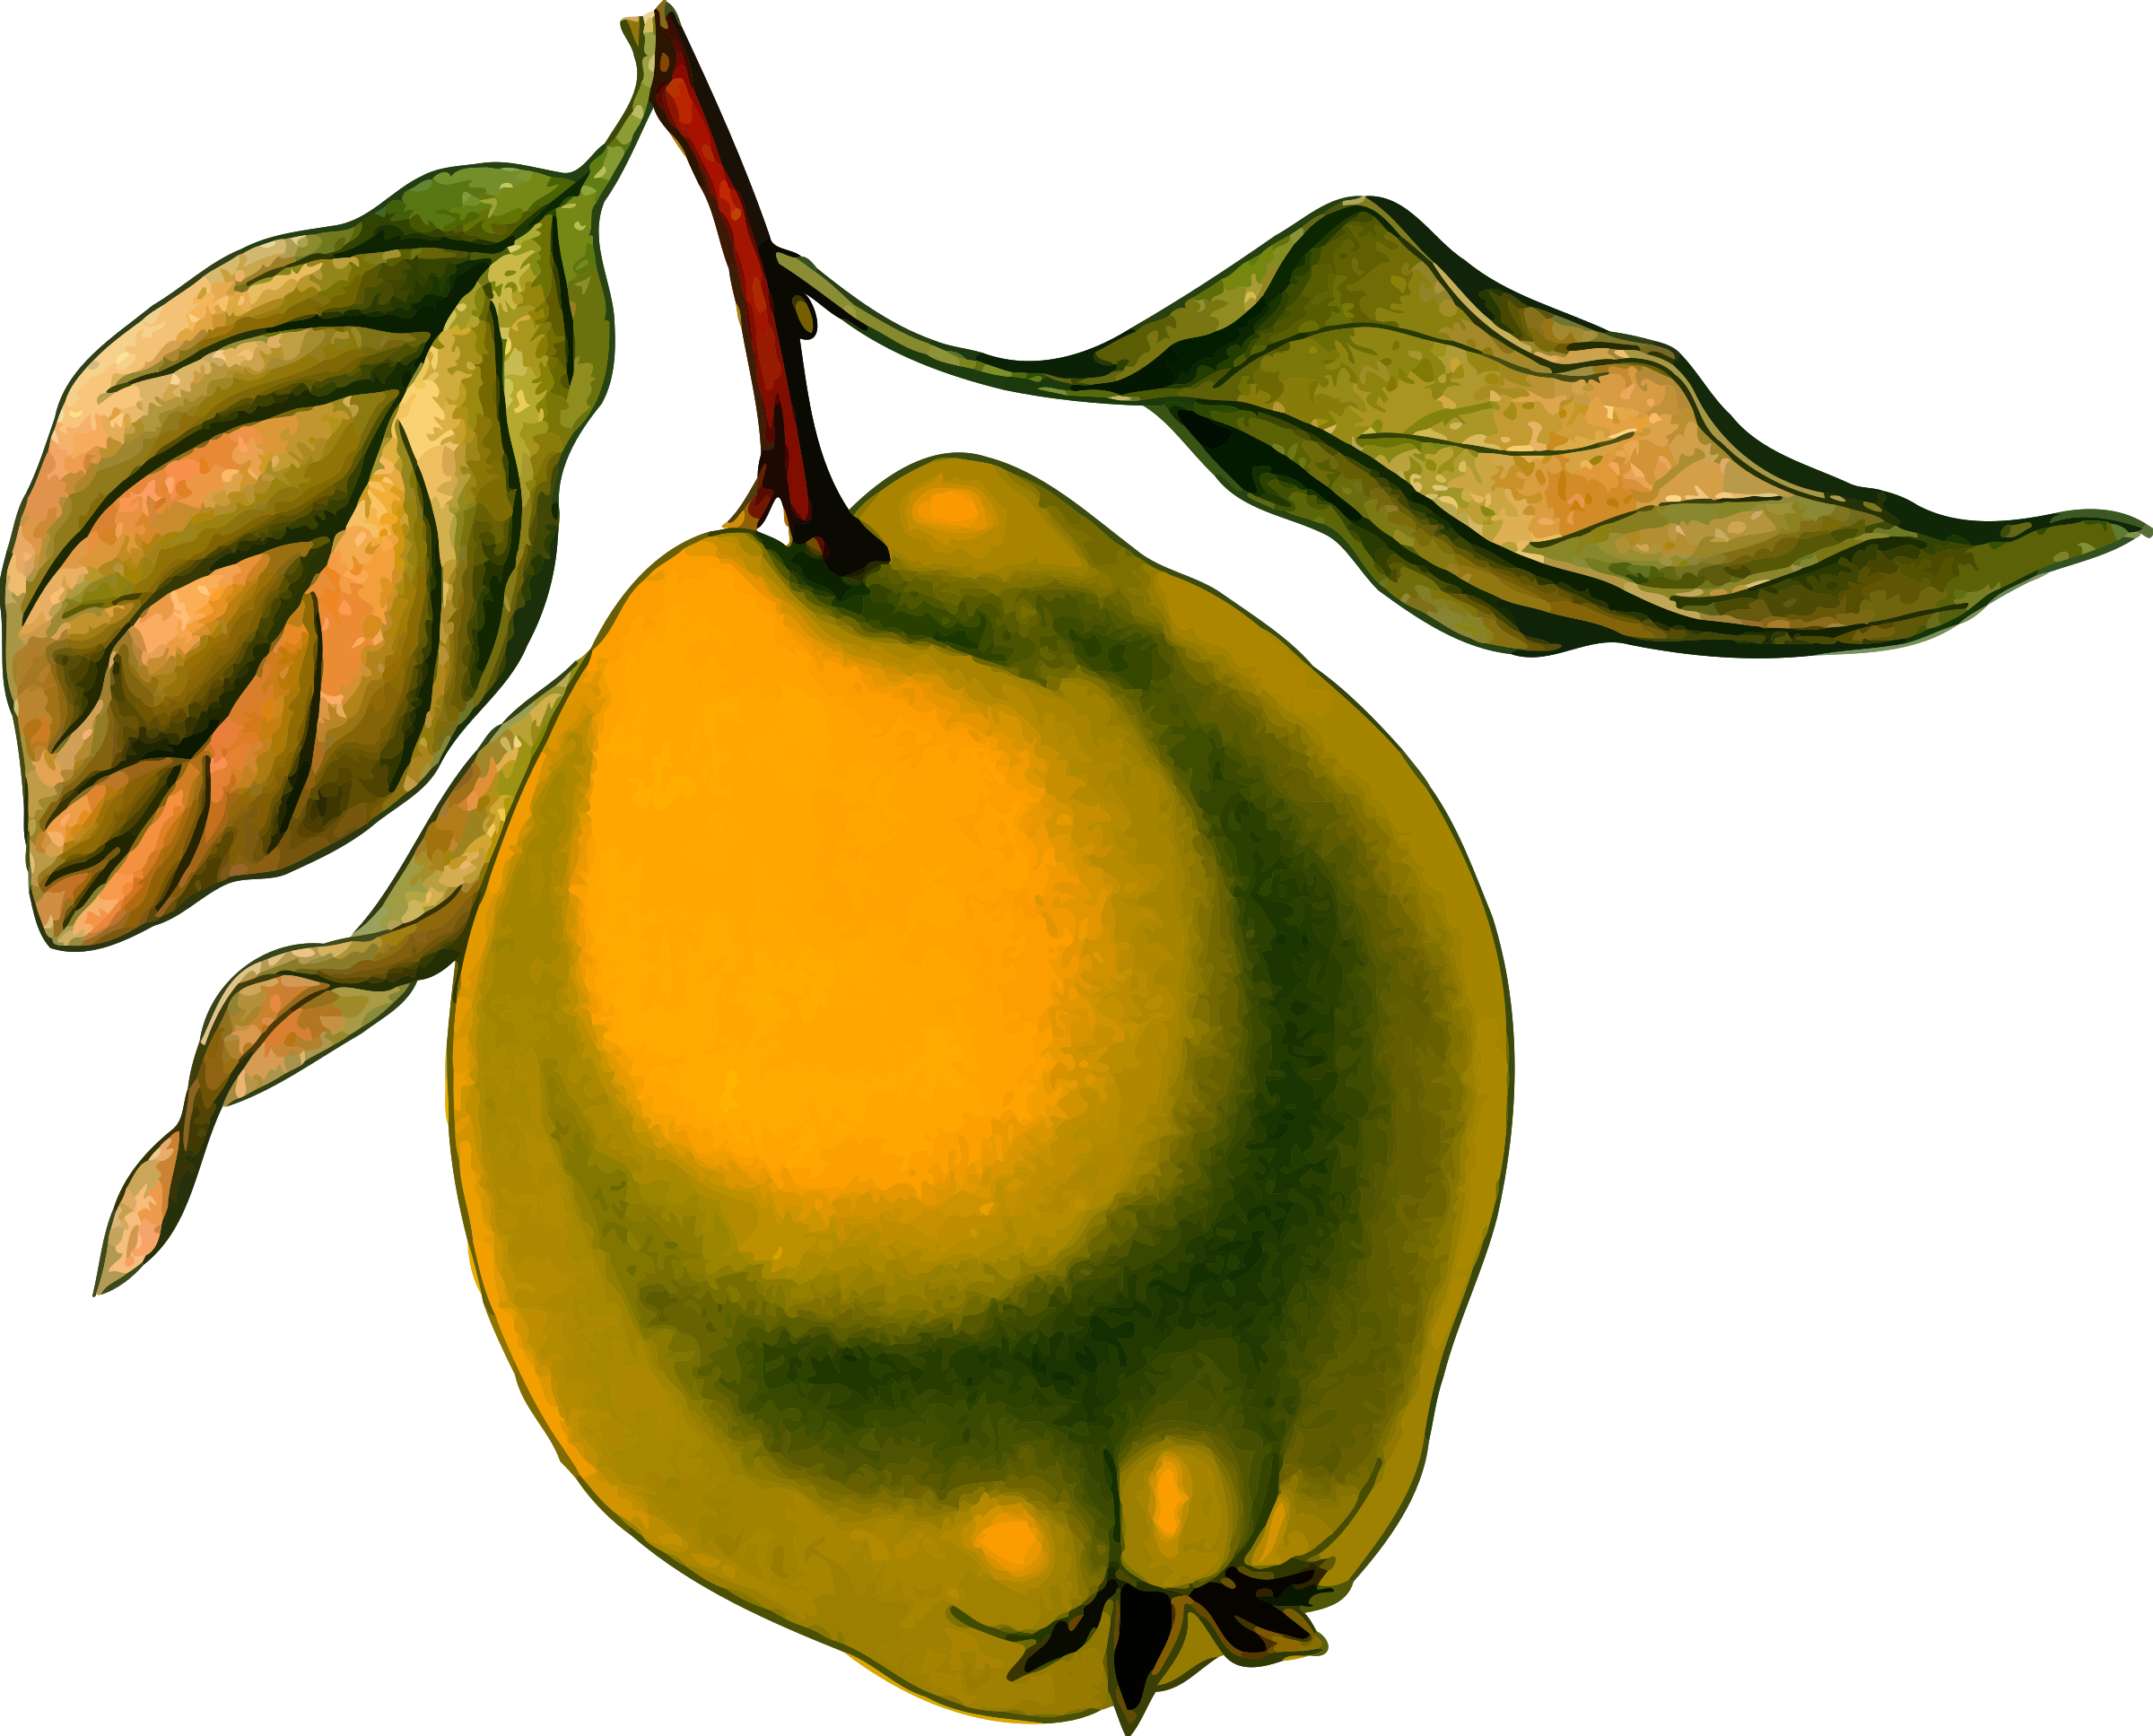 Quince 3 (detailed) by Firkin